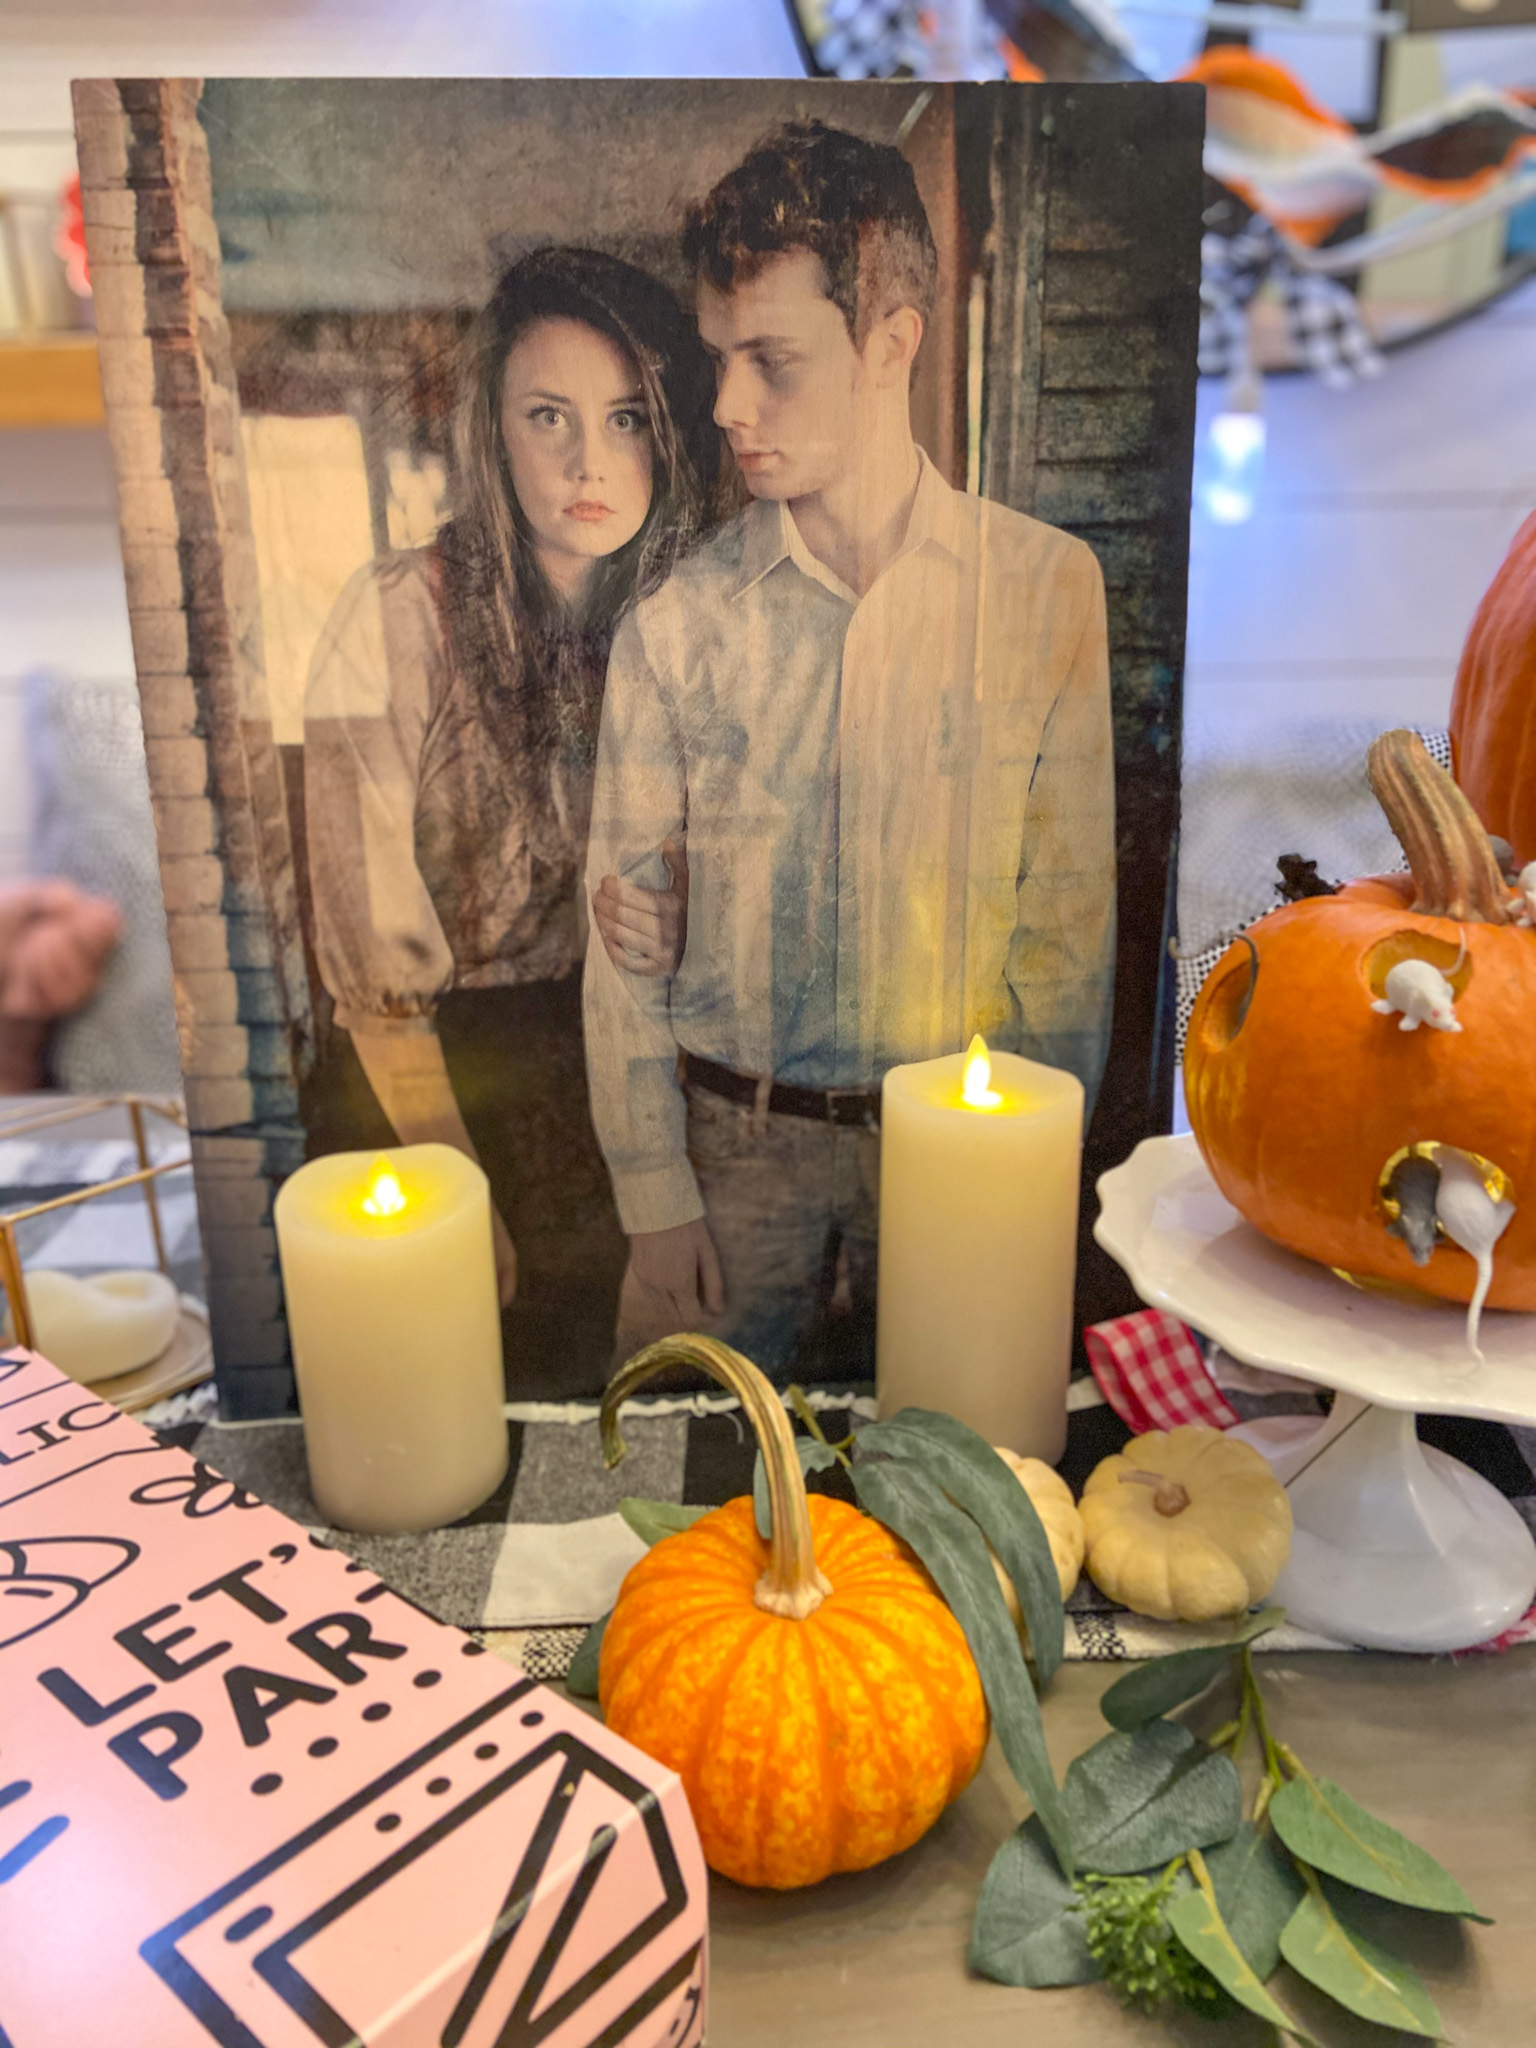 DIY The Witch Mice Pumpkins and Free Printable! Celebrate the new Ronald Dahl movie - The Witches by making Mice Pumpkins and printing out the inspiring quote from the movie.